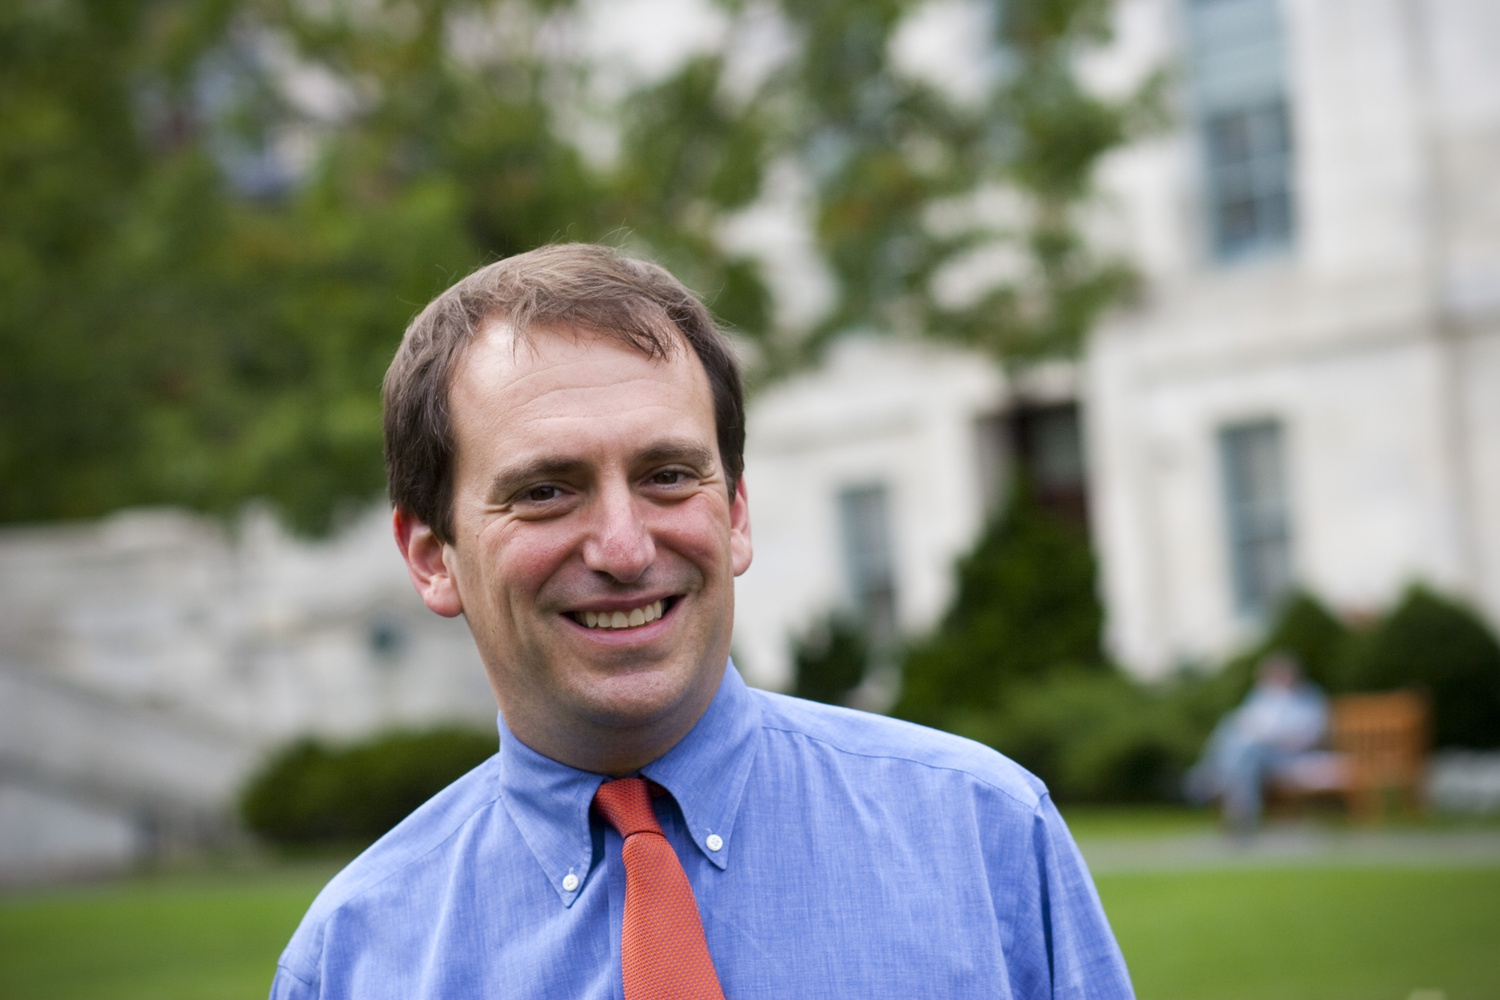 Harvard School of Public Health Professor Marc Lipsitch, whose work understanding the spread of disease has made him one of the institution's most-trusted experts on COVID-19.